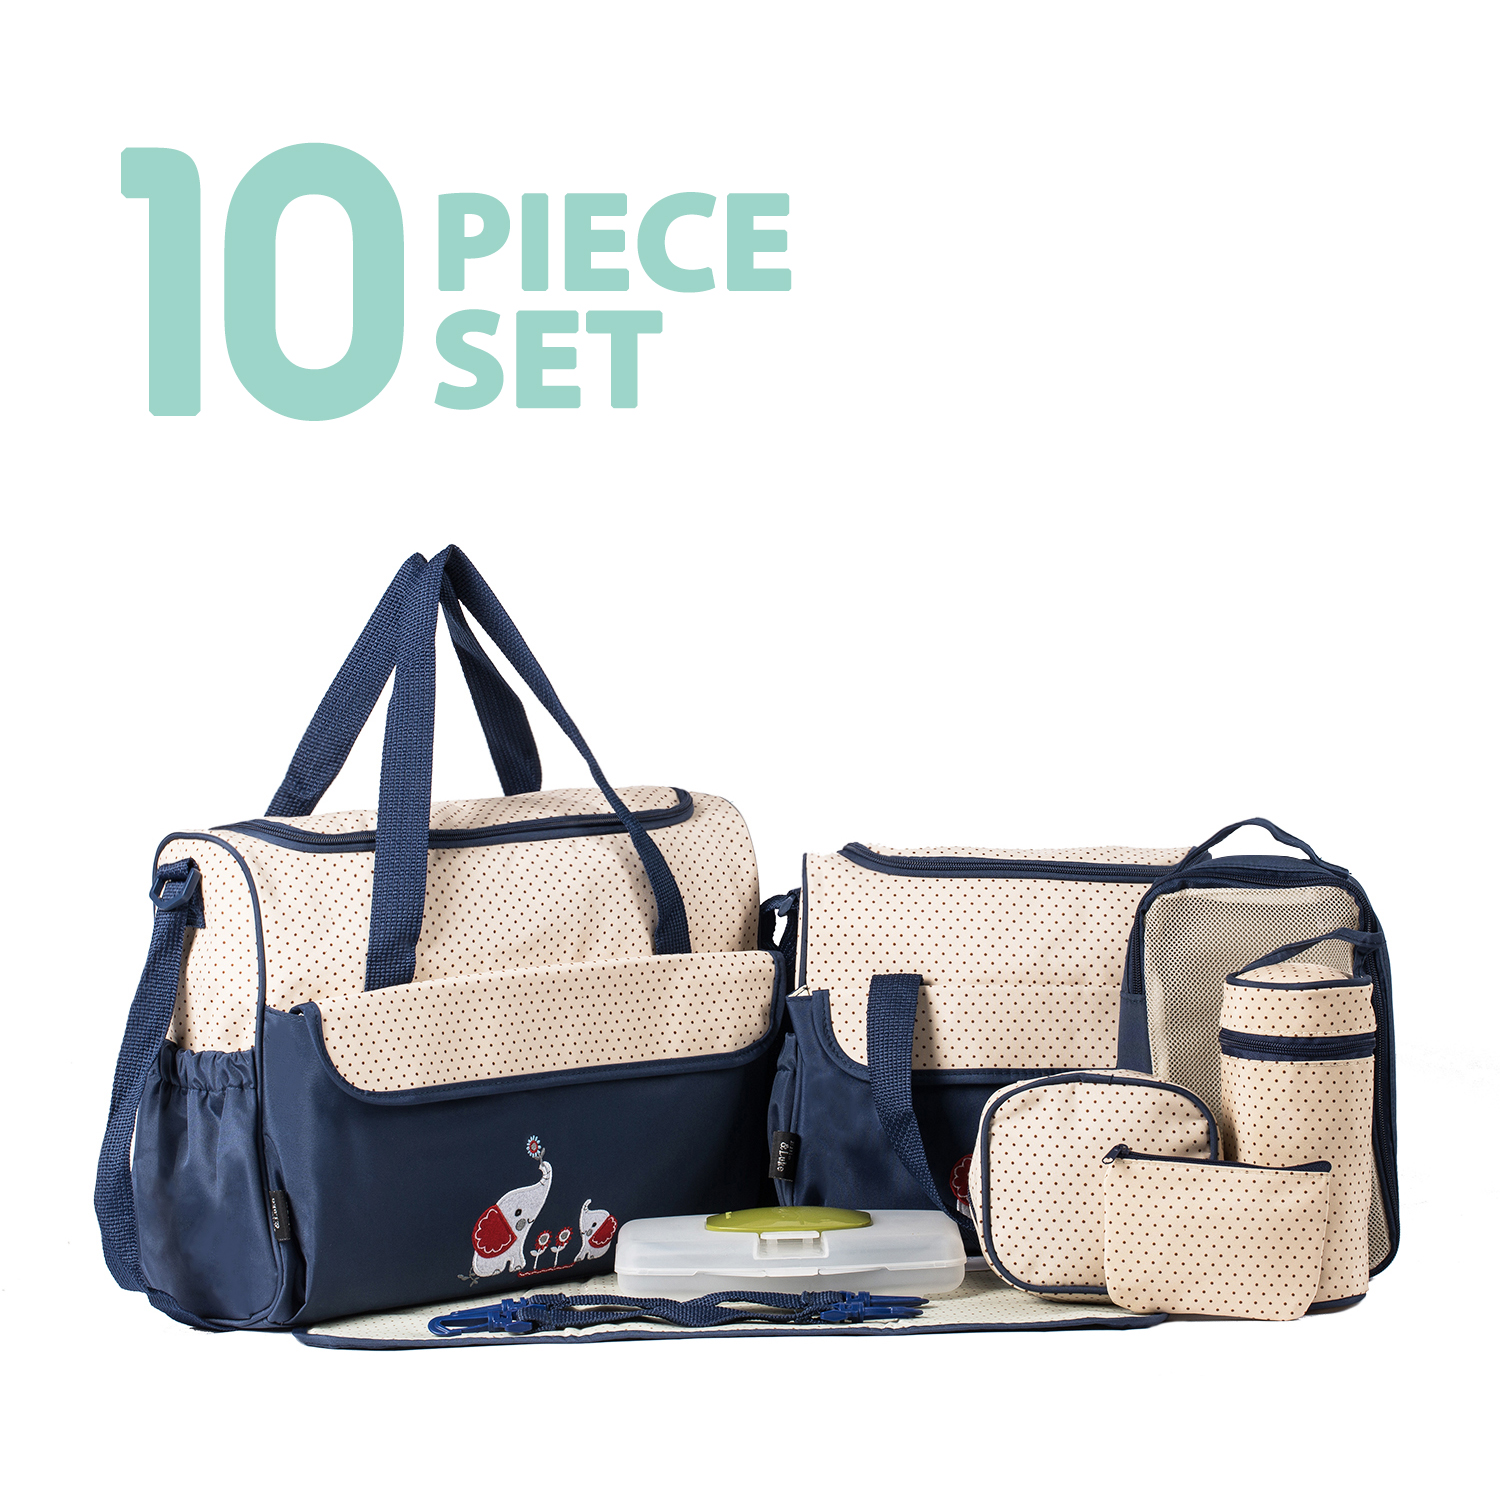 SOHO Collections, 10 Pieces Diaper Bag SetLimited time offer (Royal Navy with Elephant)